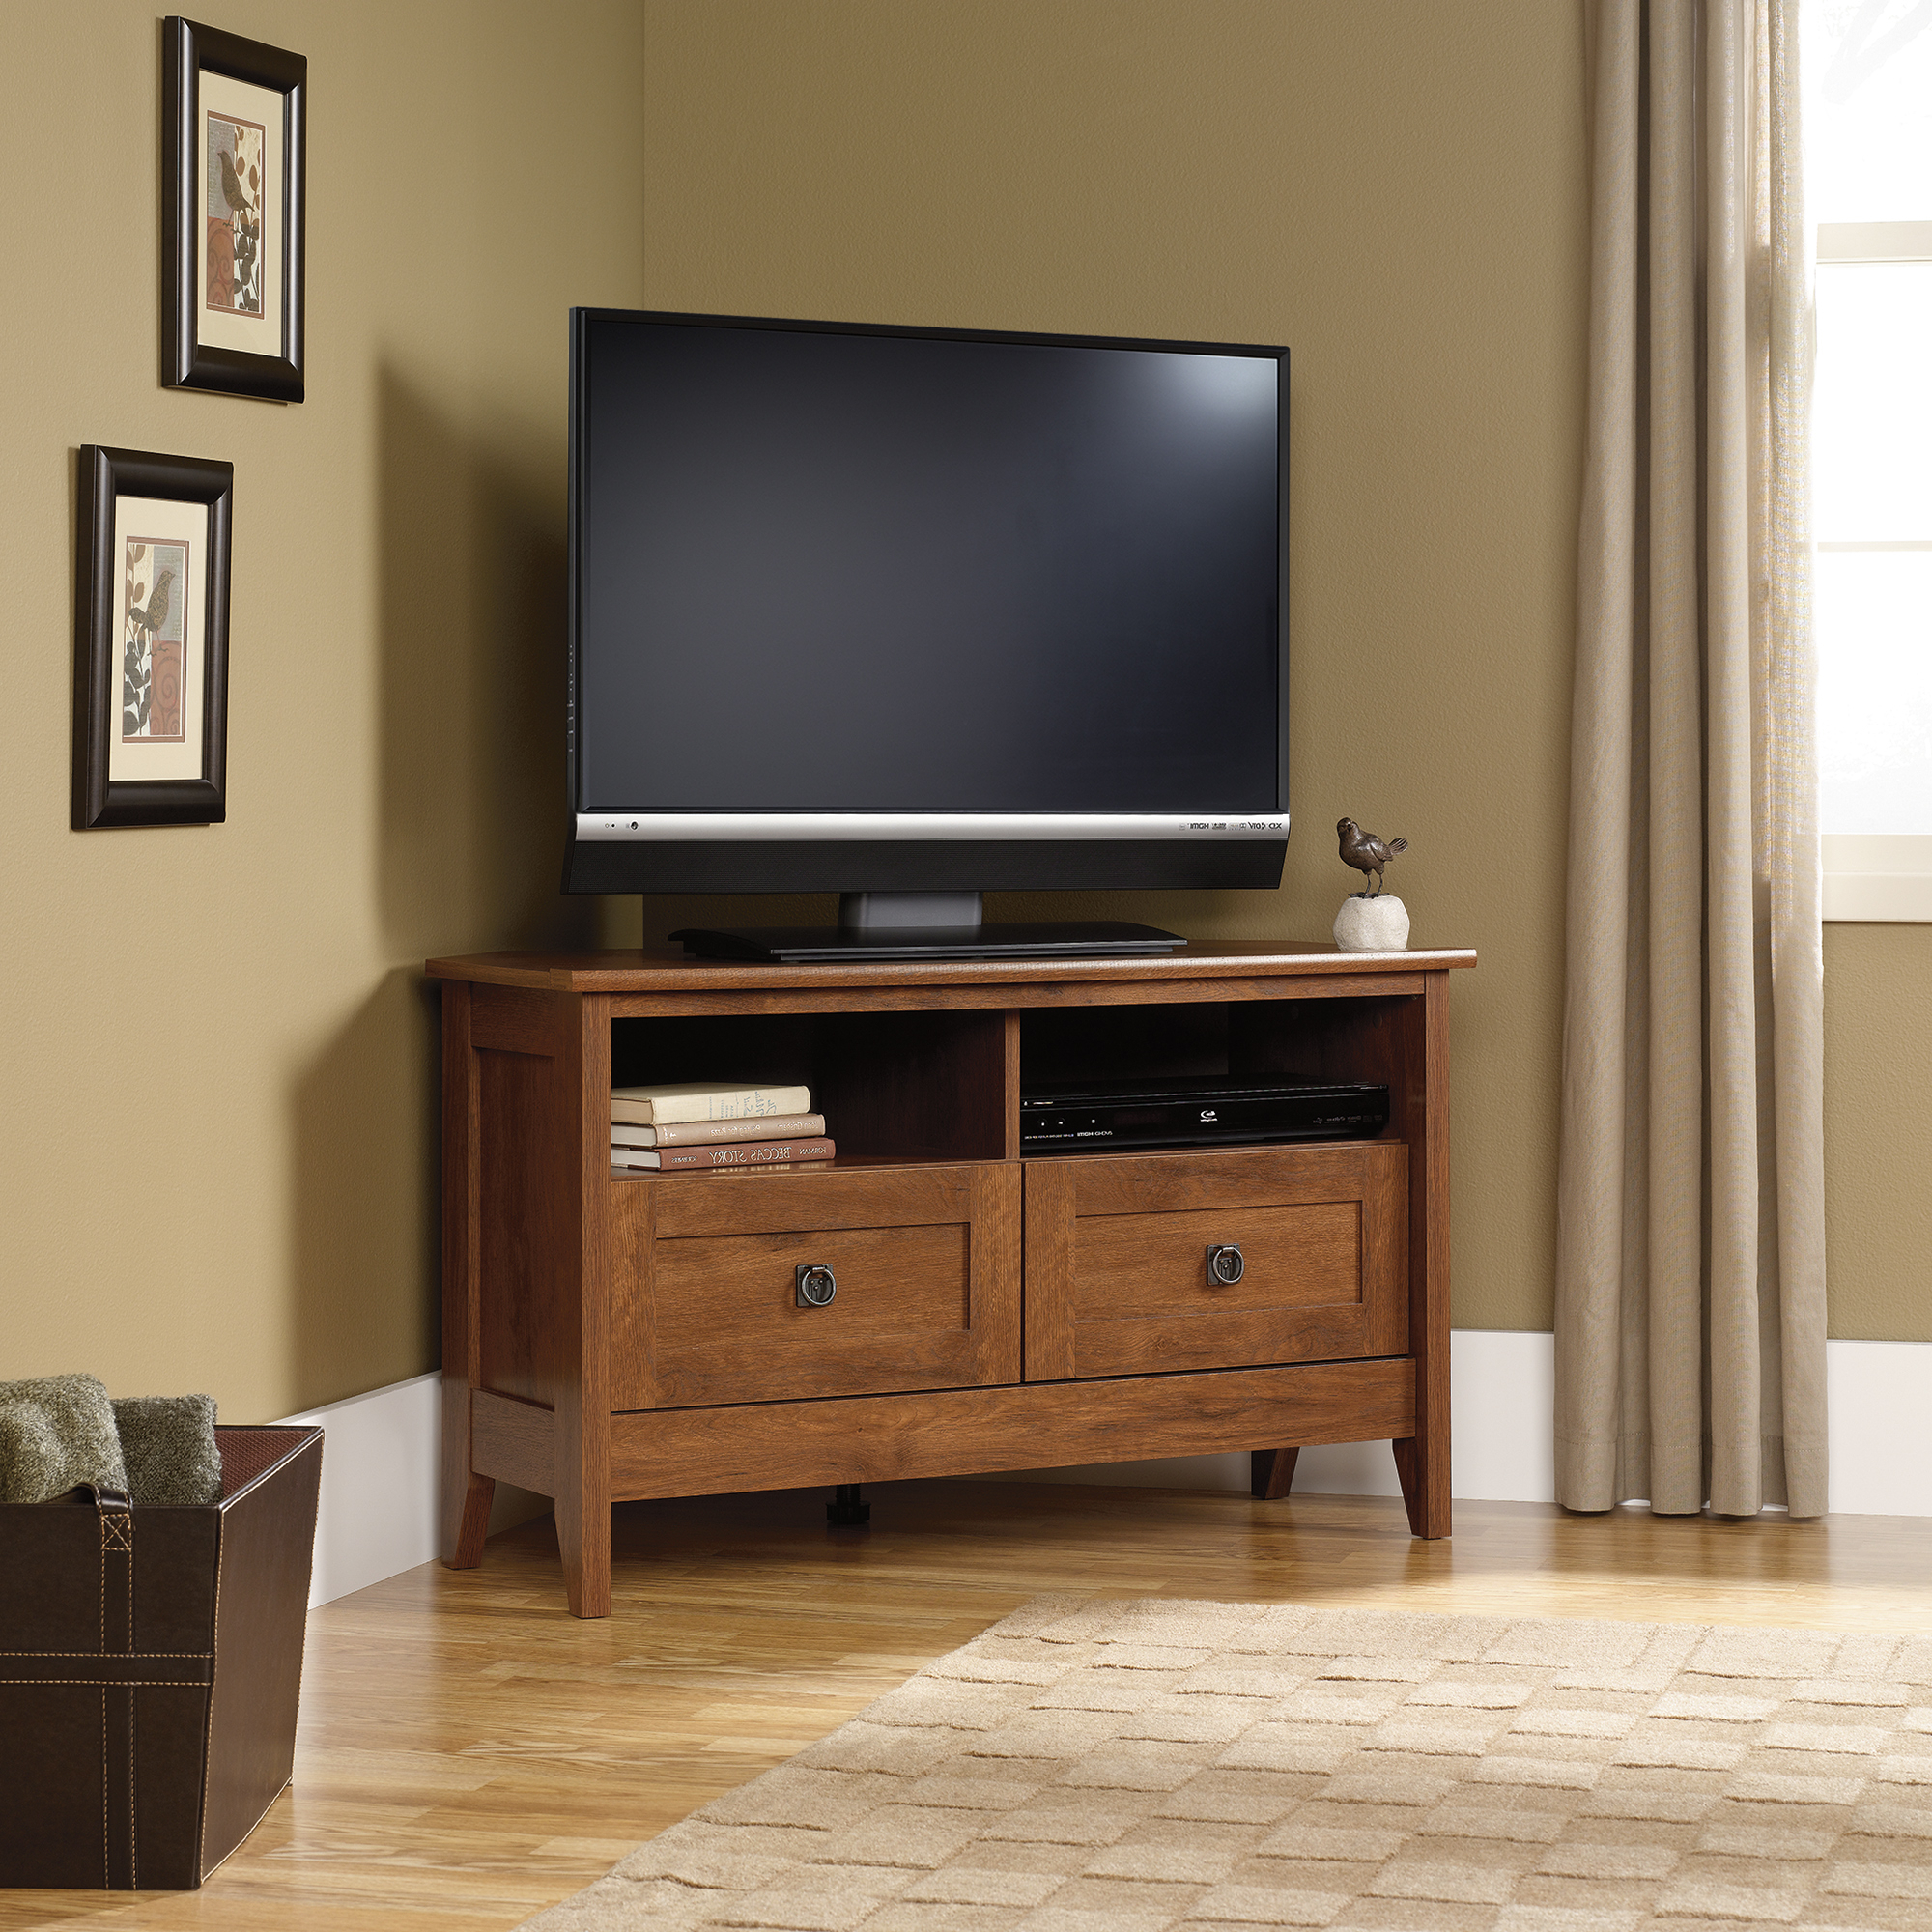 Most Popular Corner Oak Tv Stands For Flat Screen Inside Oak Finish Corner Tv Stand (View 15 of 20)